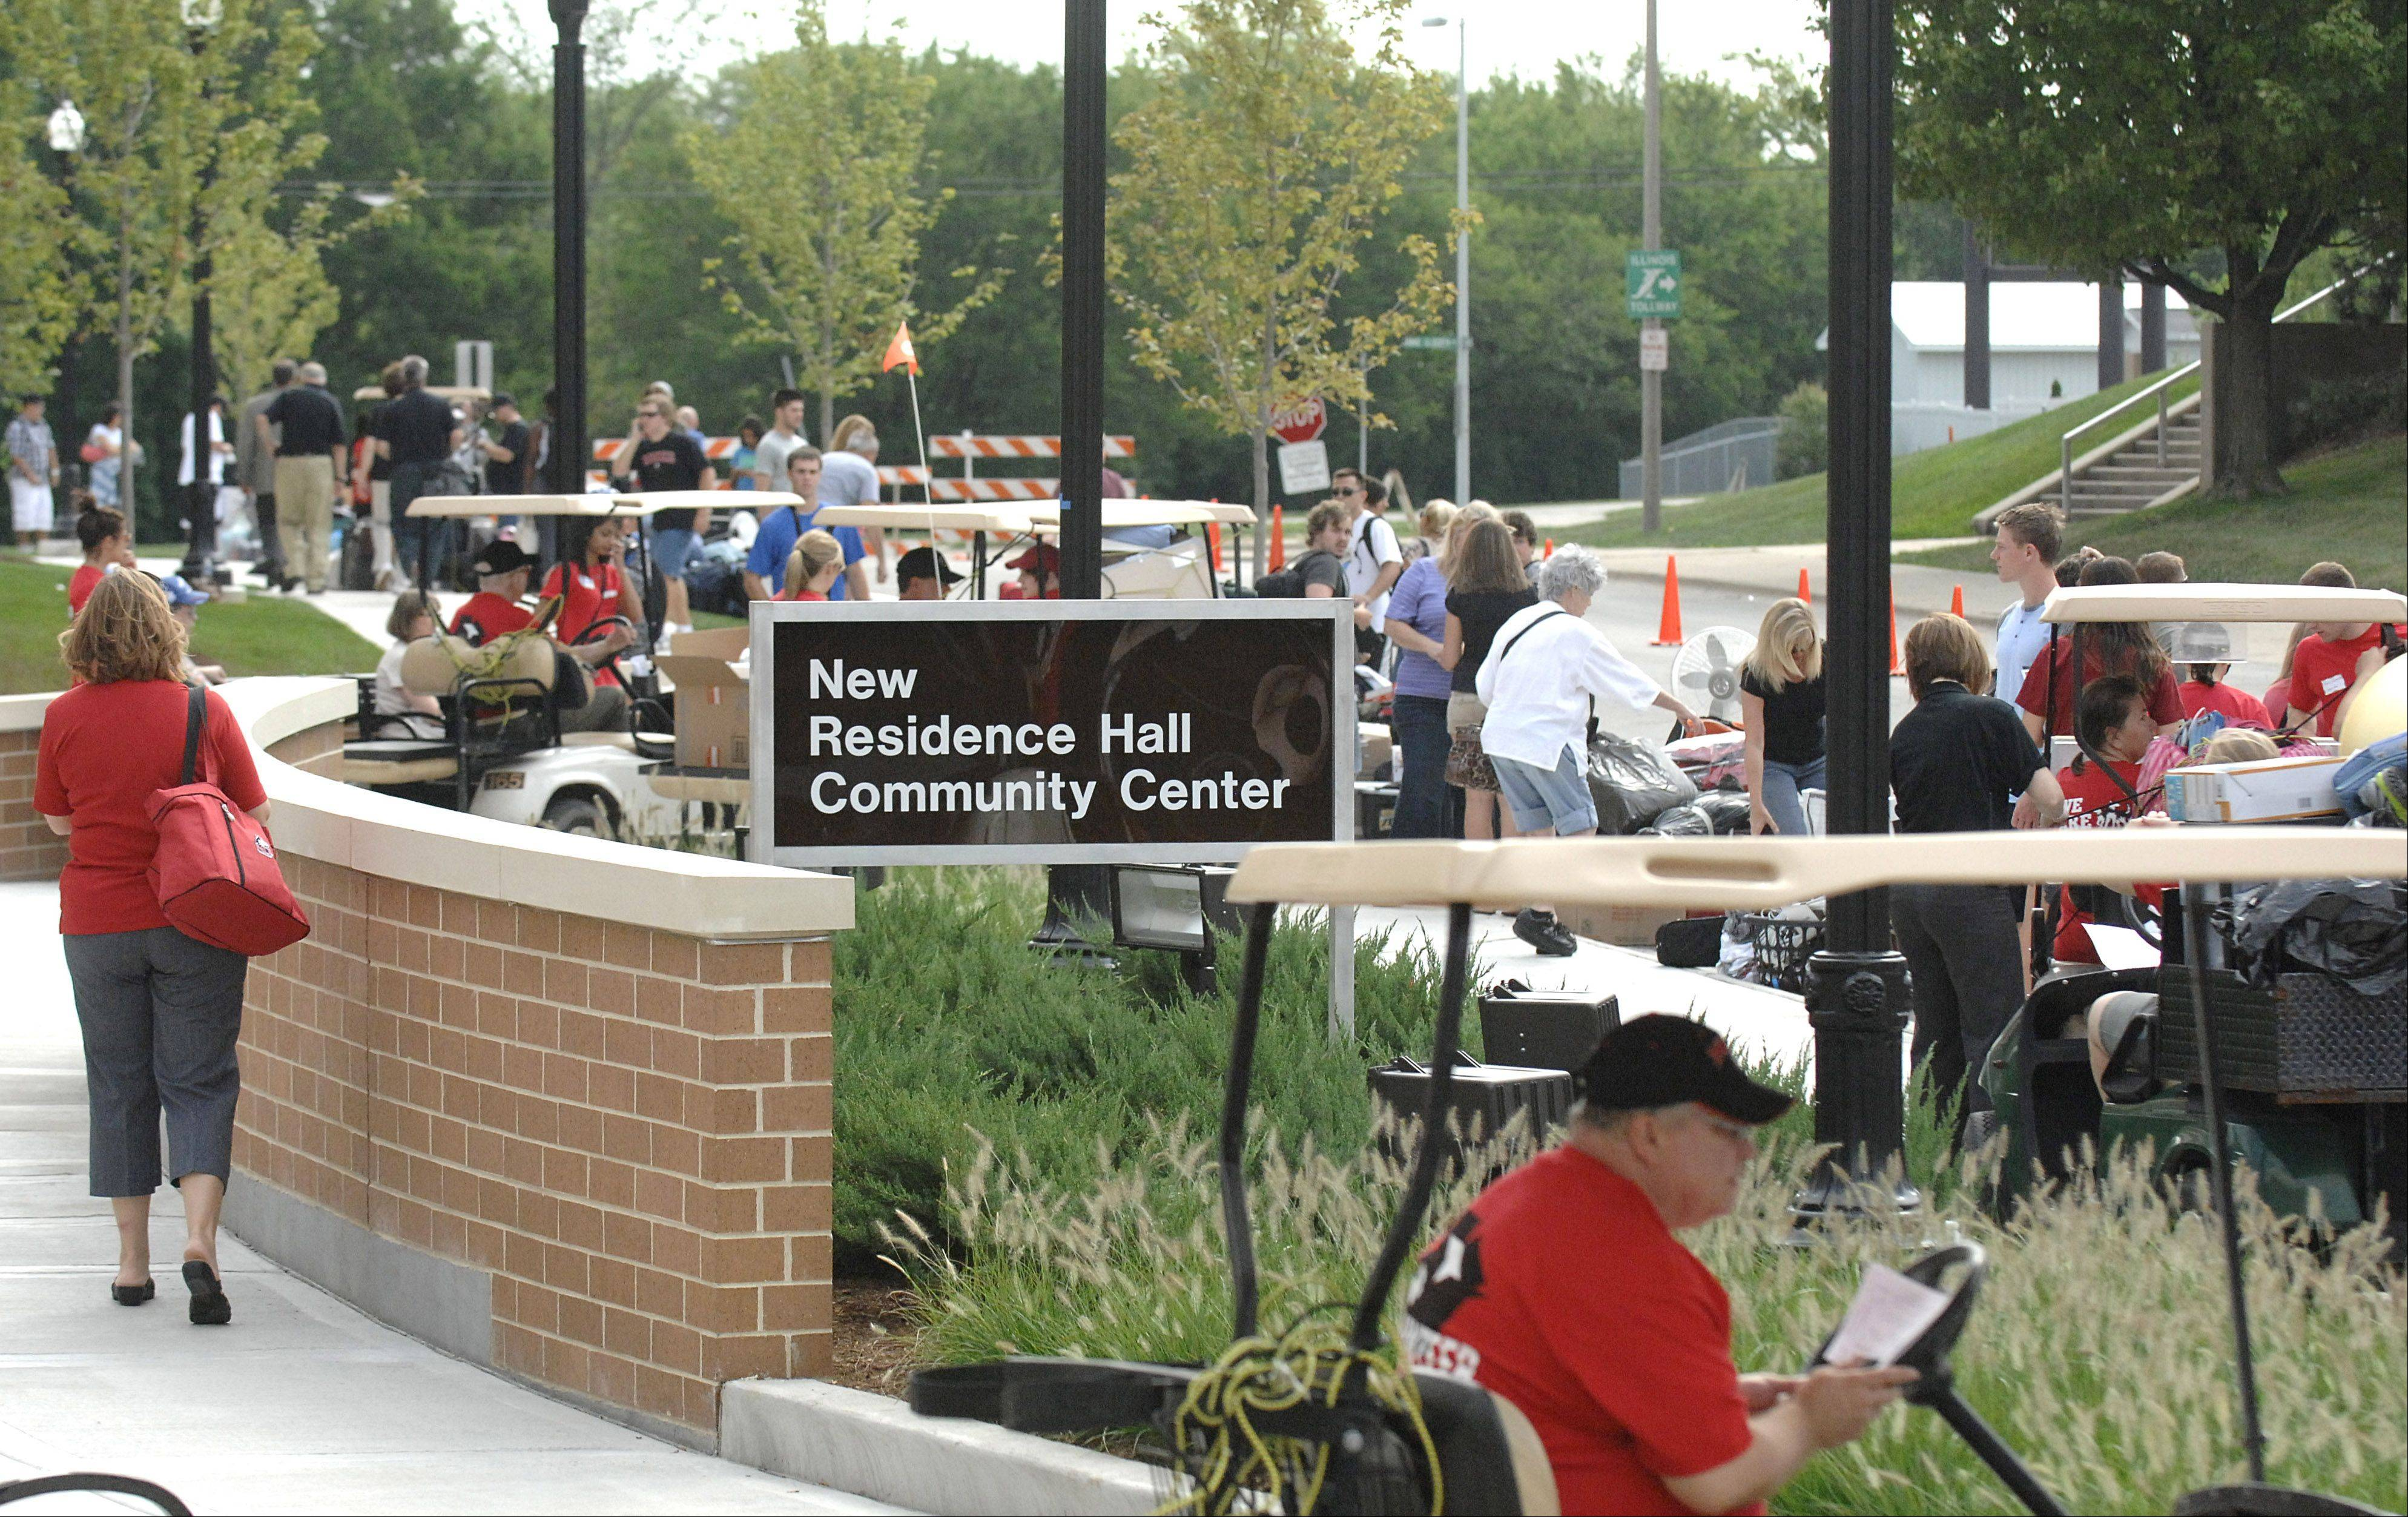 It's move-in day for students at New Residence Halls East and West at Northern Illinois University in DeKalb on Thursday, August 23.